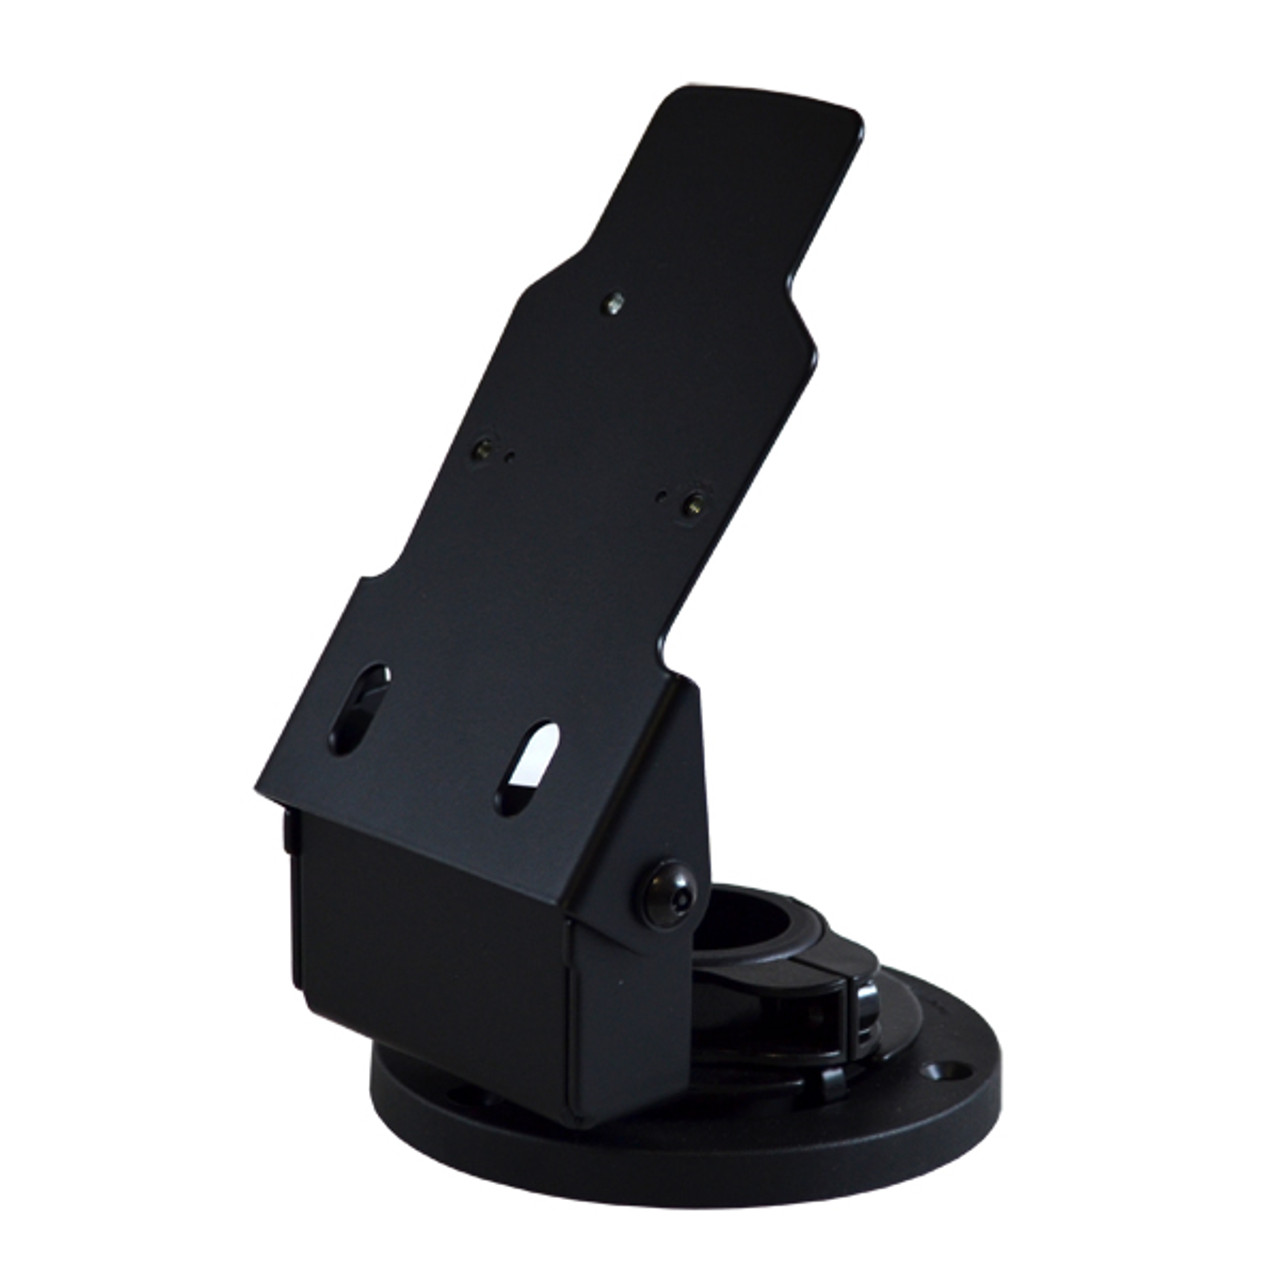 VeriFone VX805 Credit Card Stand Low Profile by Swivel Stands